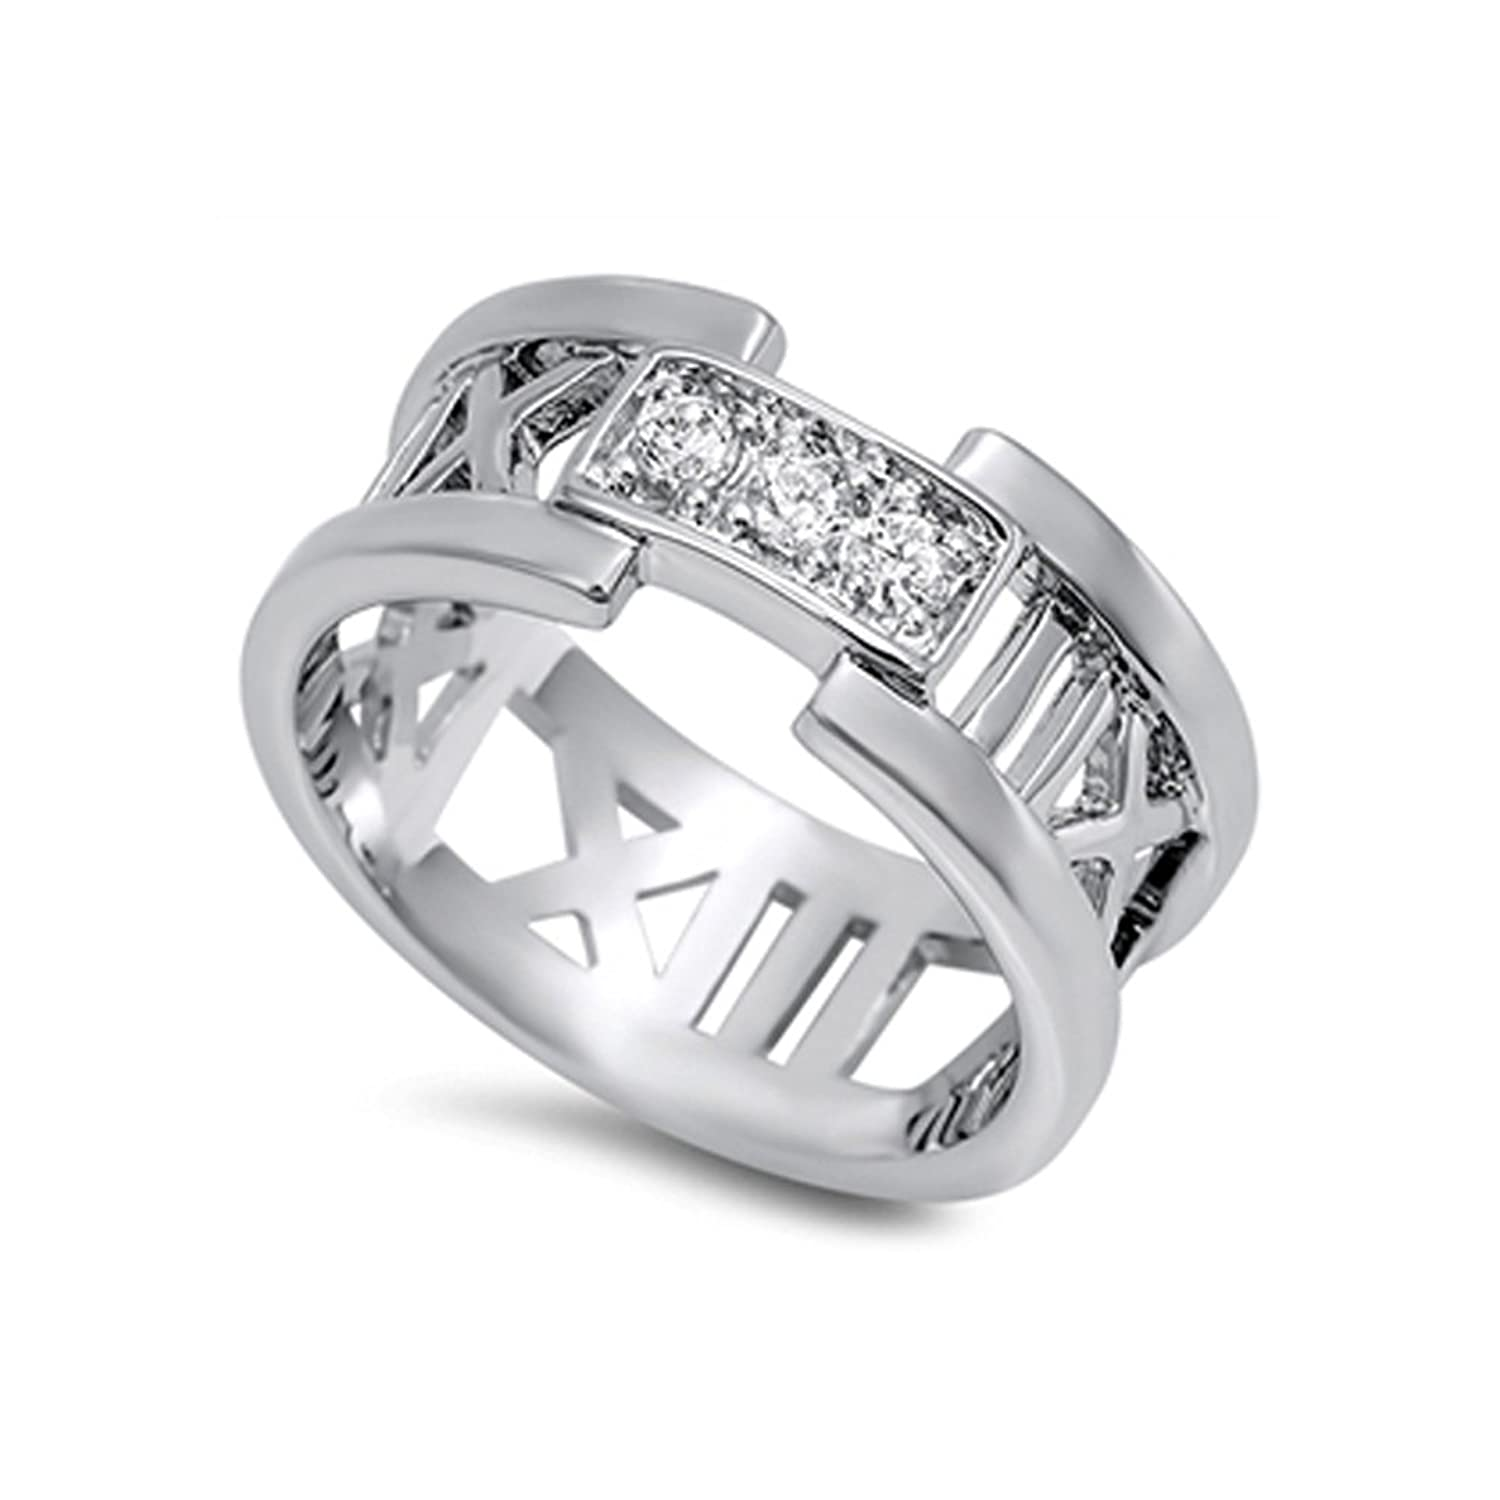 .925 Sterling Silver Roman Numerals Statement Ring with Cz